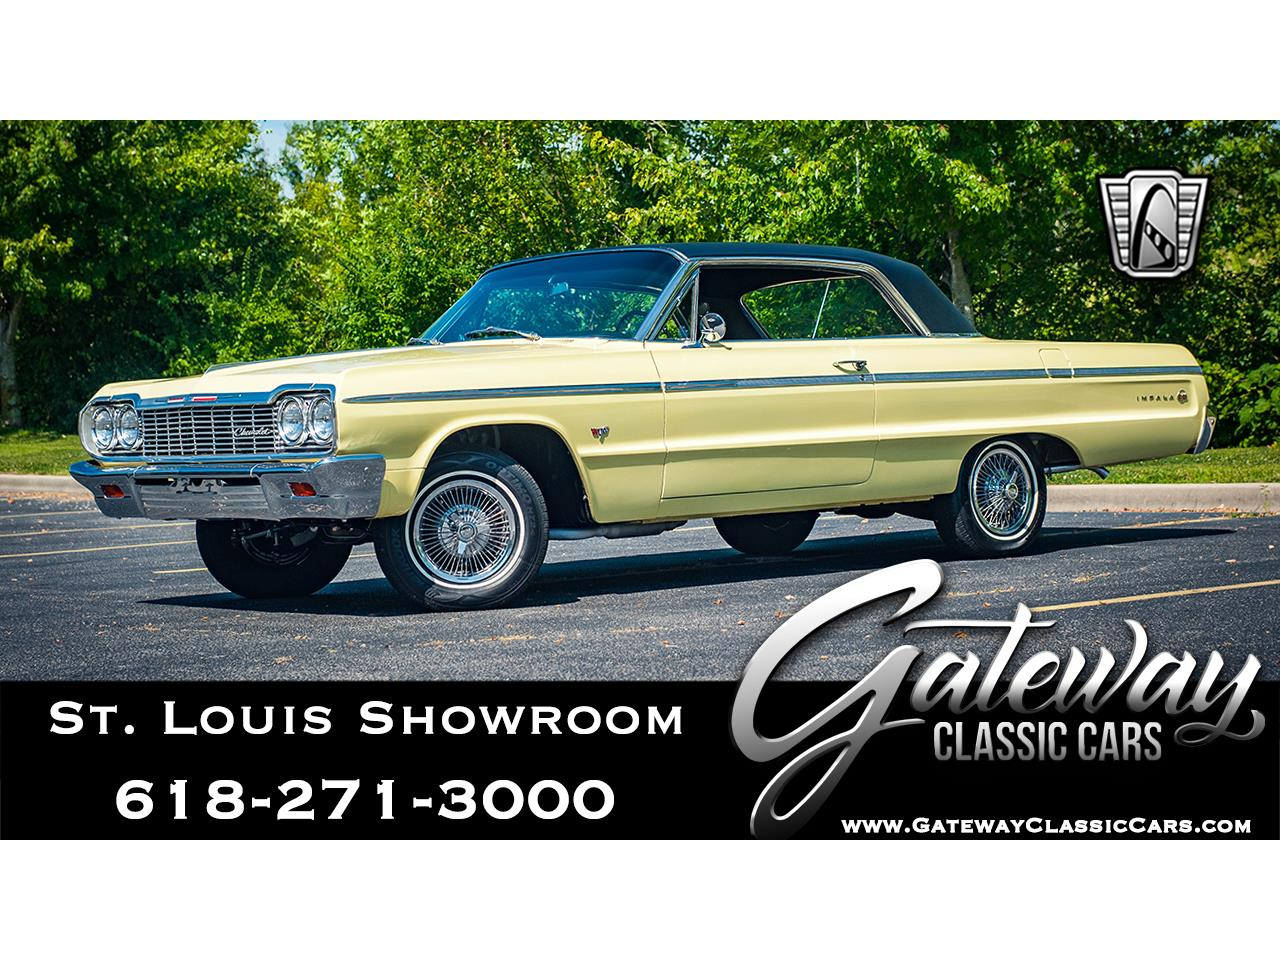 Large Picture of '64 Impala located in Illinois - $45,000.00 Offered by Gateway Classic Cars - St. Louis - QRDR